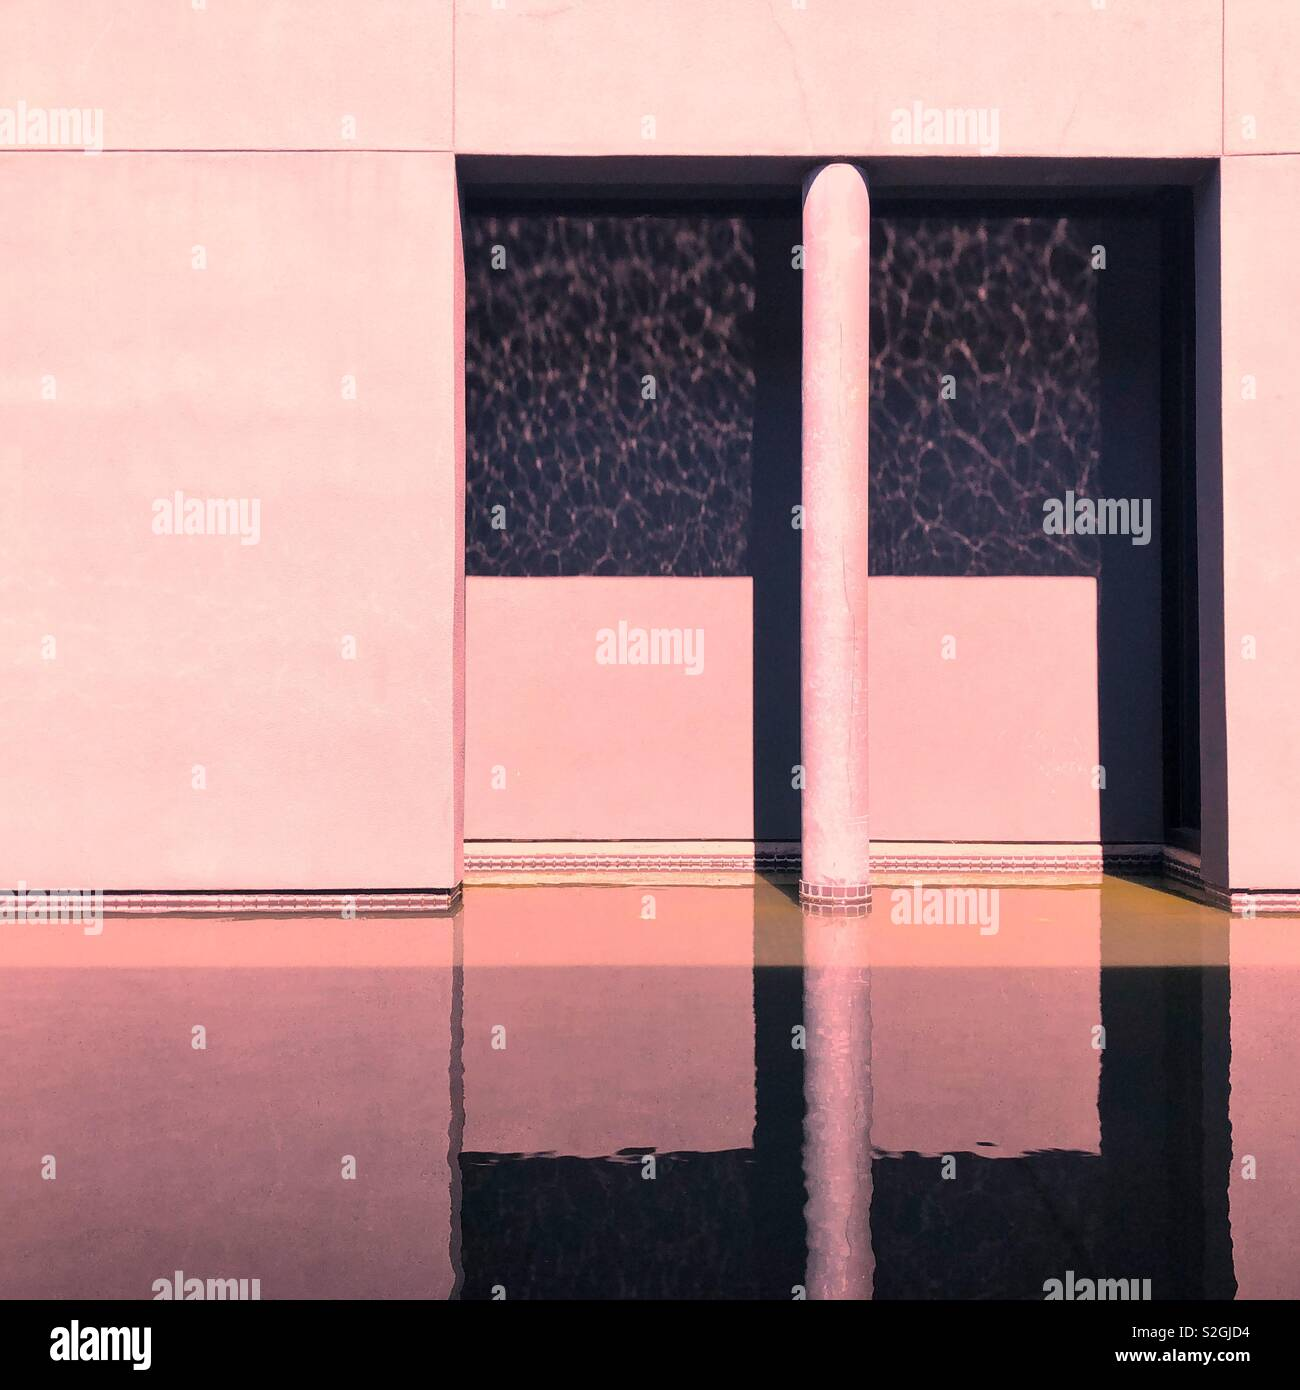 Abstract architectural reflection - Stock Image